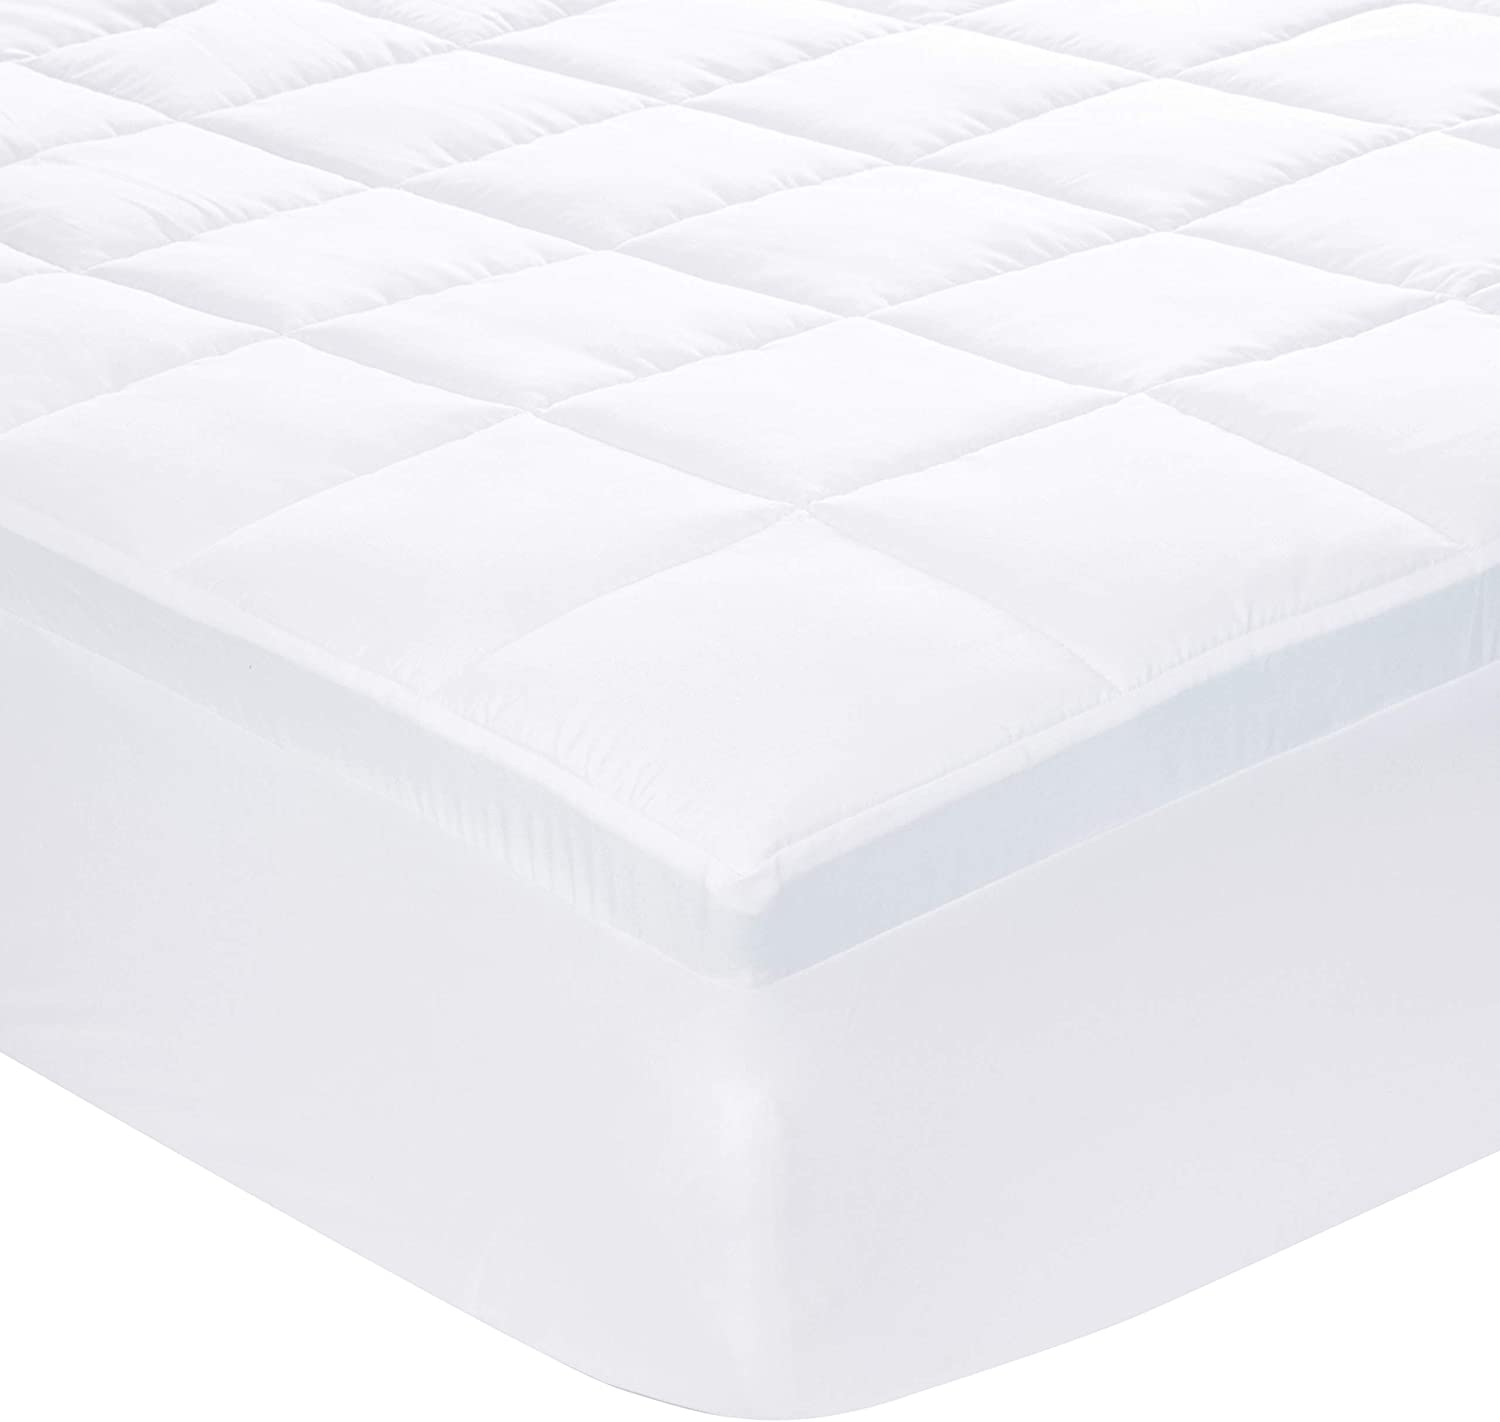 AmazonBasics Down-Alternative Gusseted Mattress Bed Topper Pad with 2-Inch Memory Foam - Full